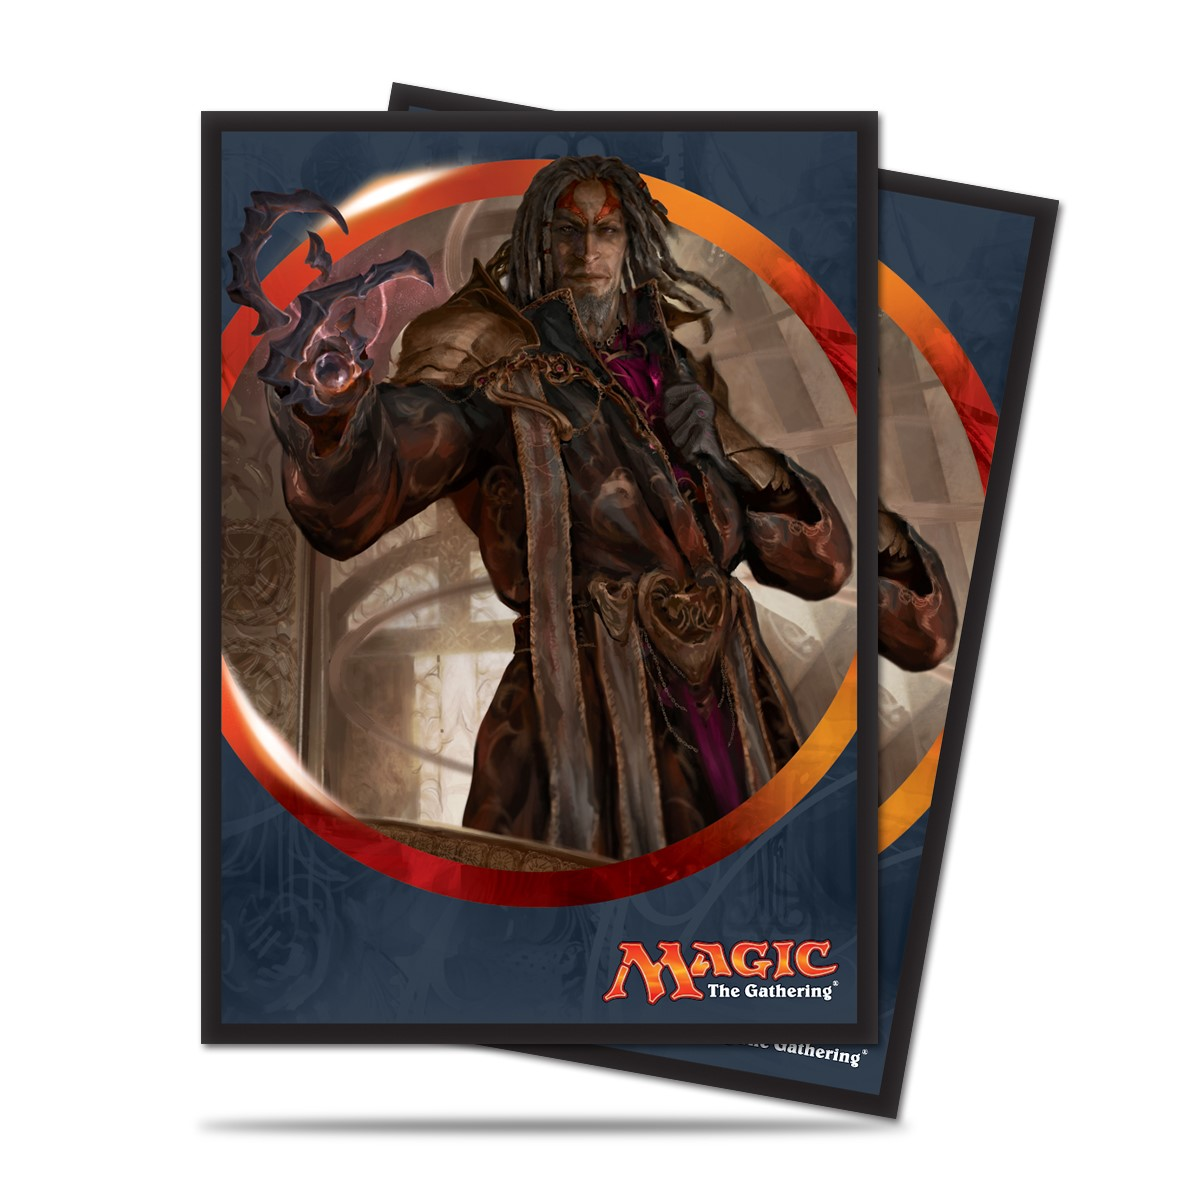 Magic The Gathering: Aether Revolt Standard Deck Protectors - Tezzeret The Schemer (80) Box Front